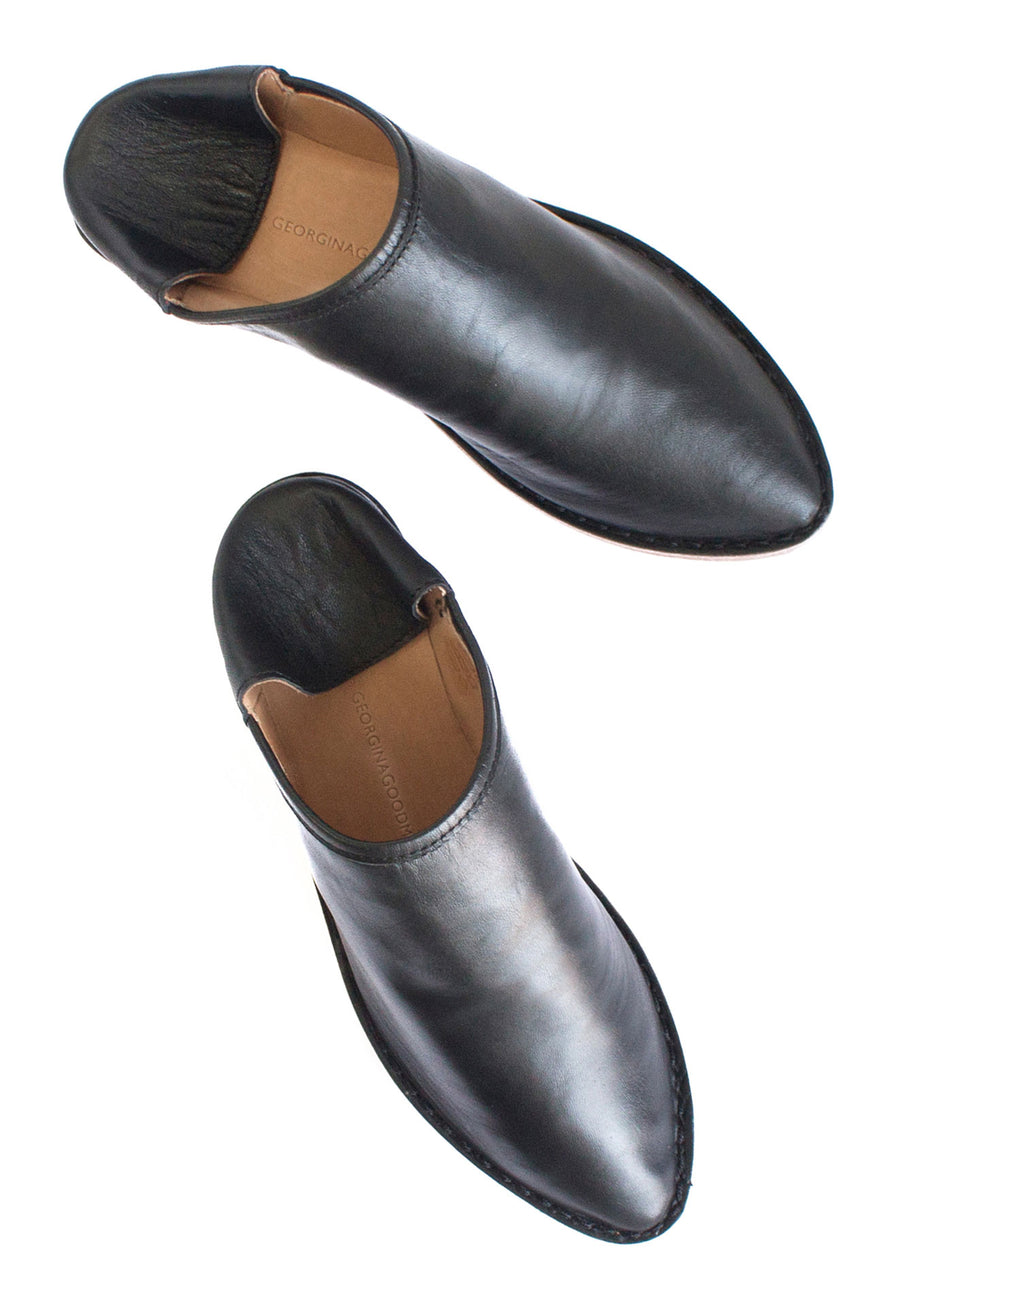 black soft leather slip on slipper shoe by Designer Georgina Goodman